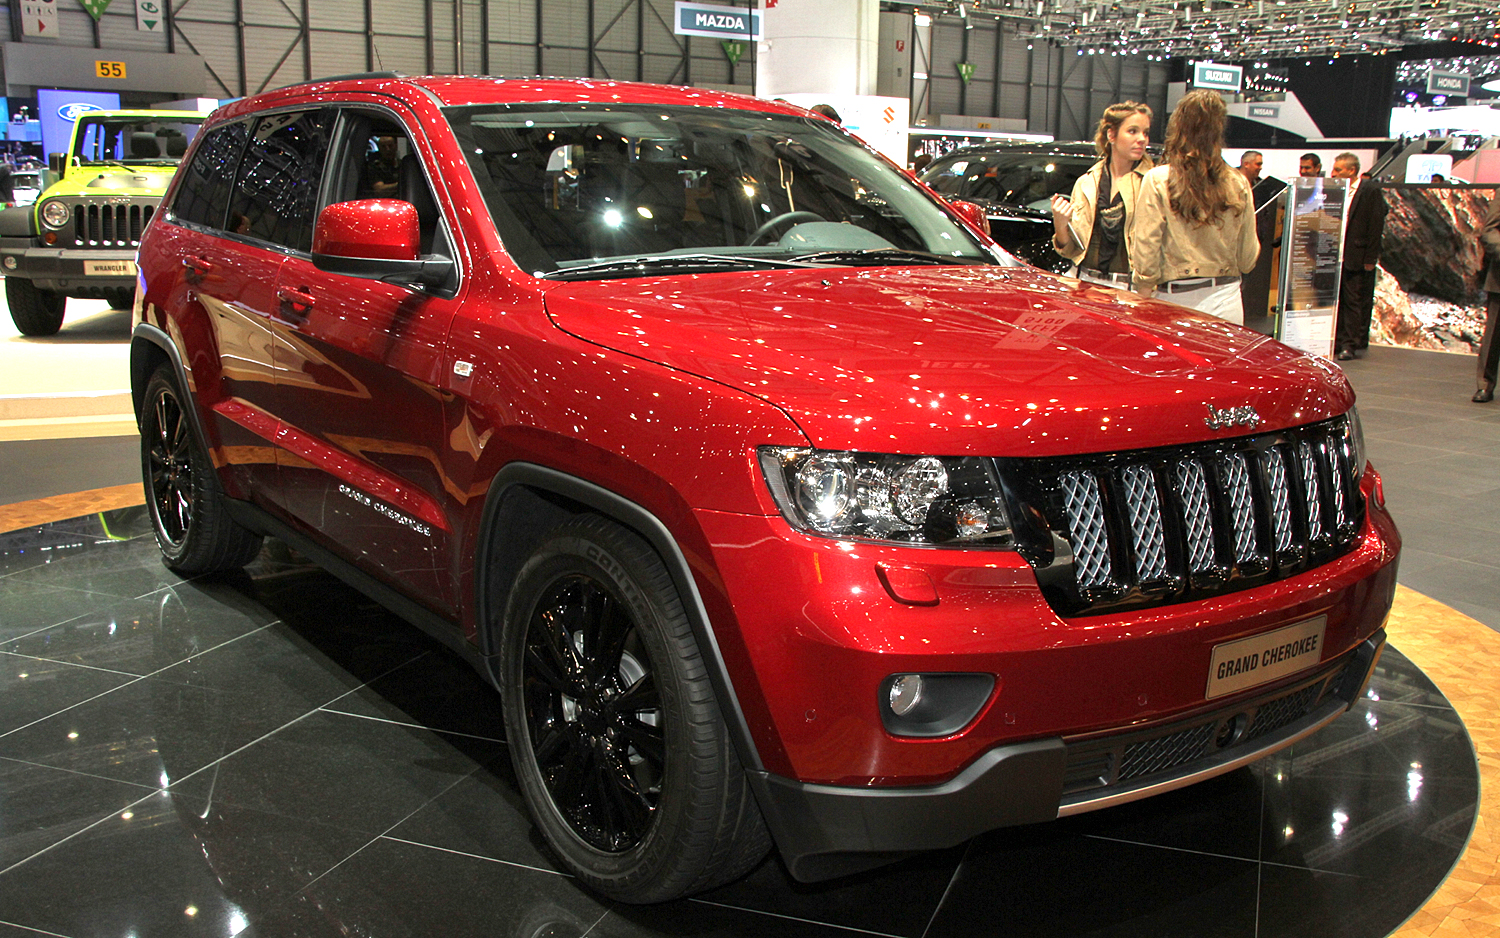 jeep grand cherokee - 1539px image #16